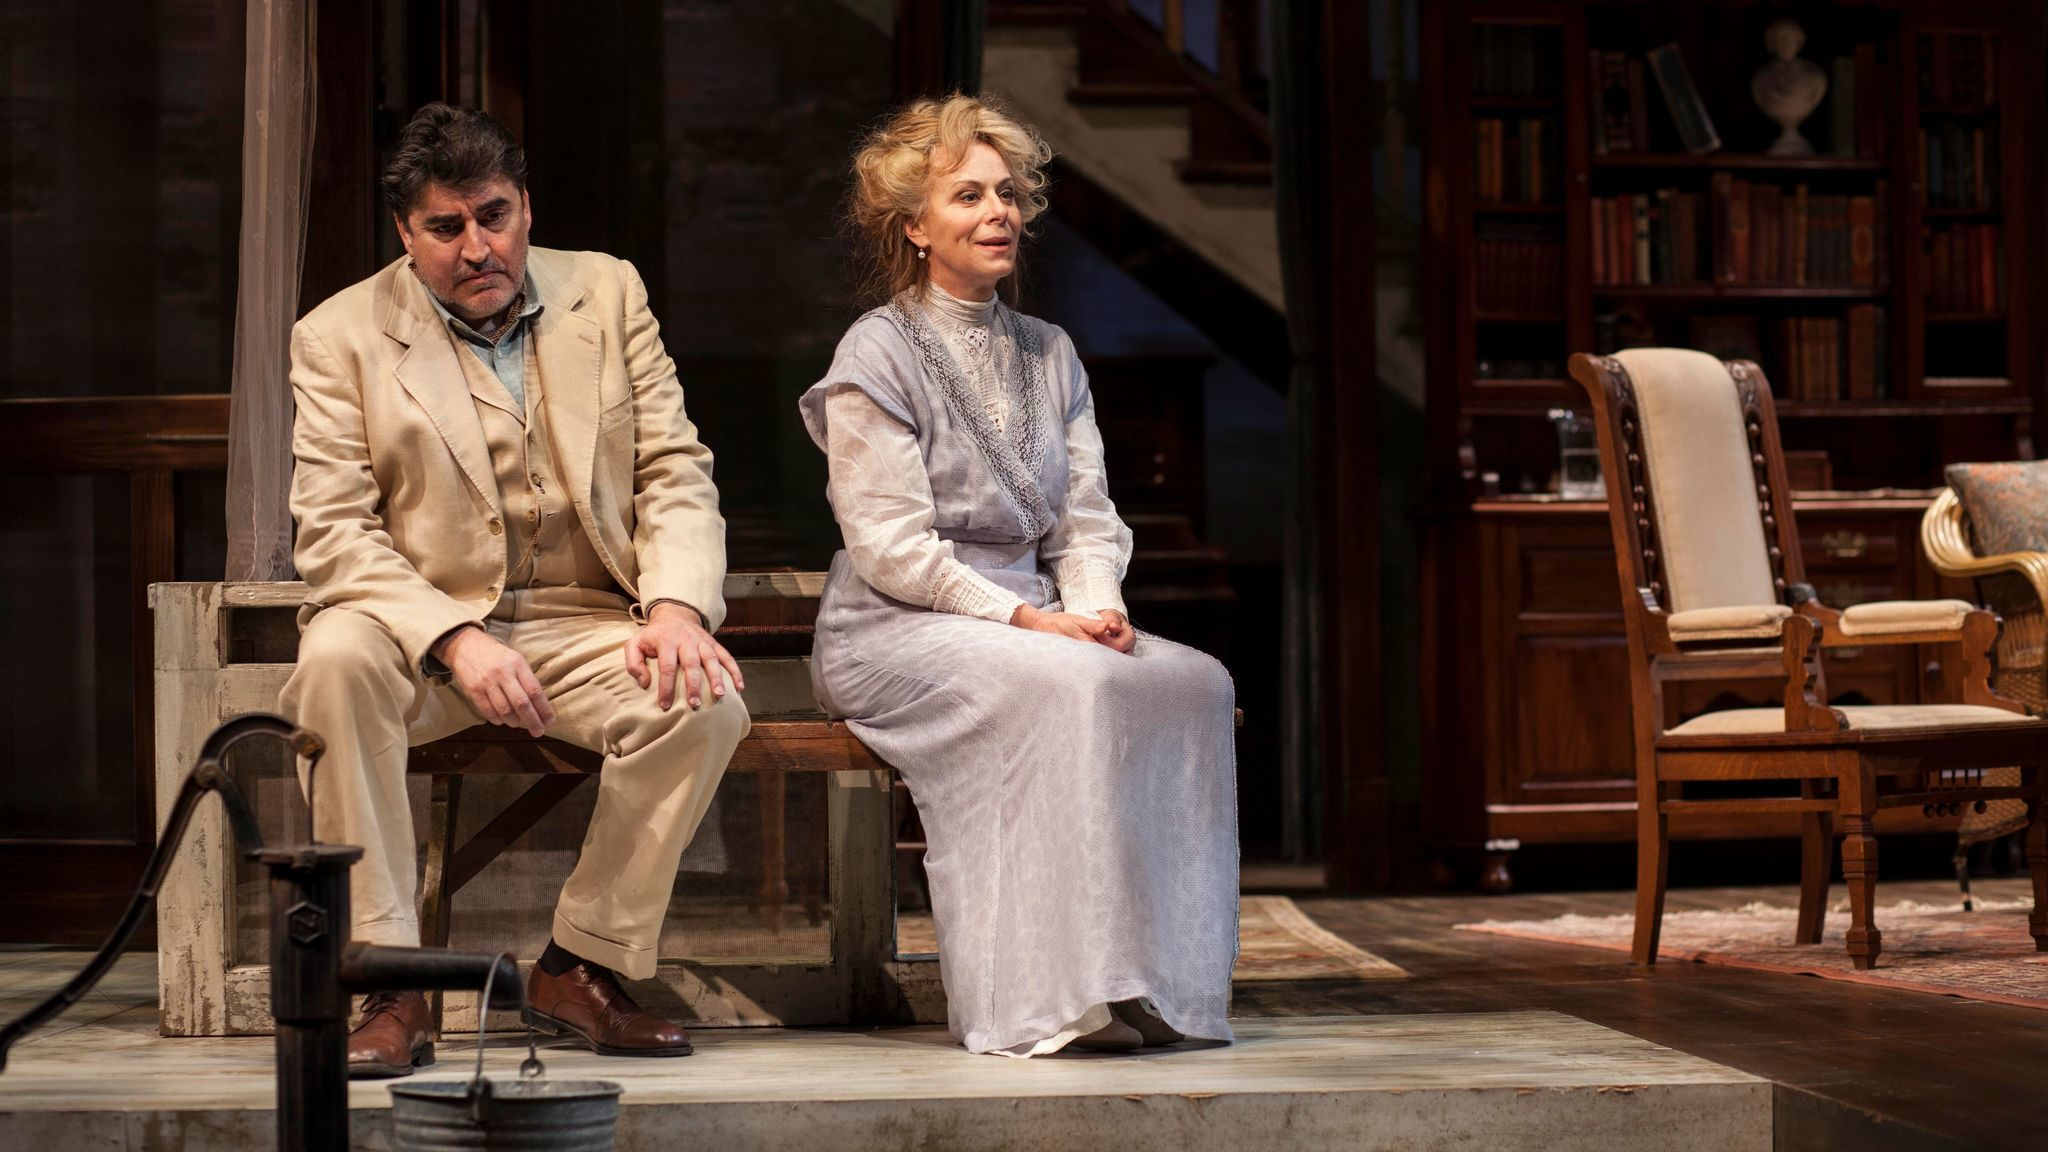 Alfred Molina, Jane Kaczmarek and the slow burn of a 'Long Day's Journey Into Night'